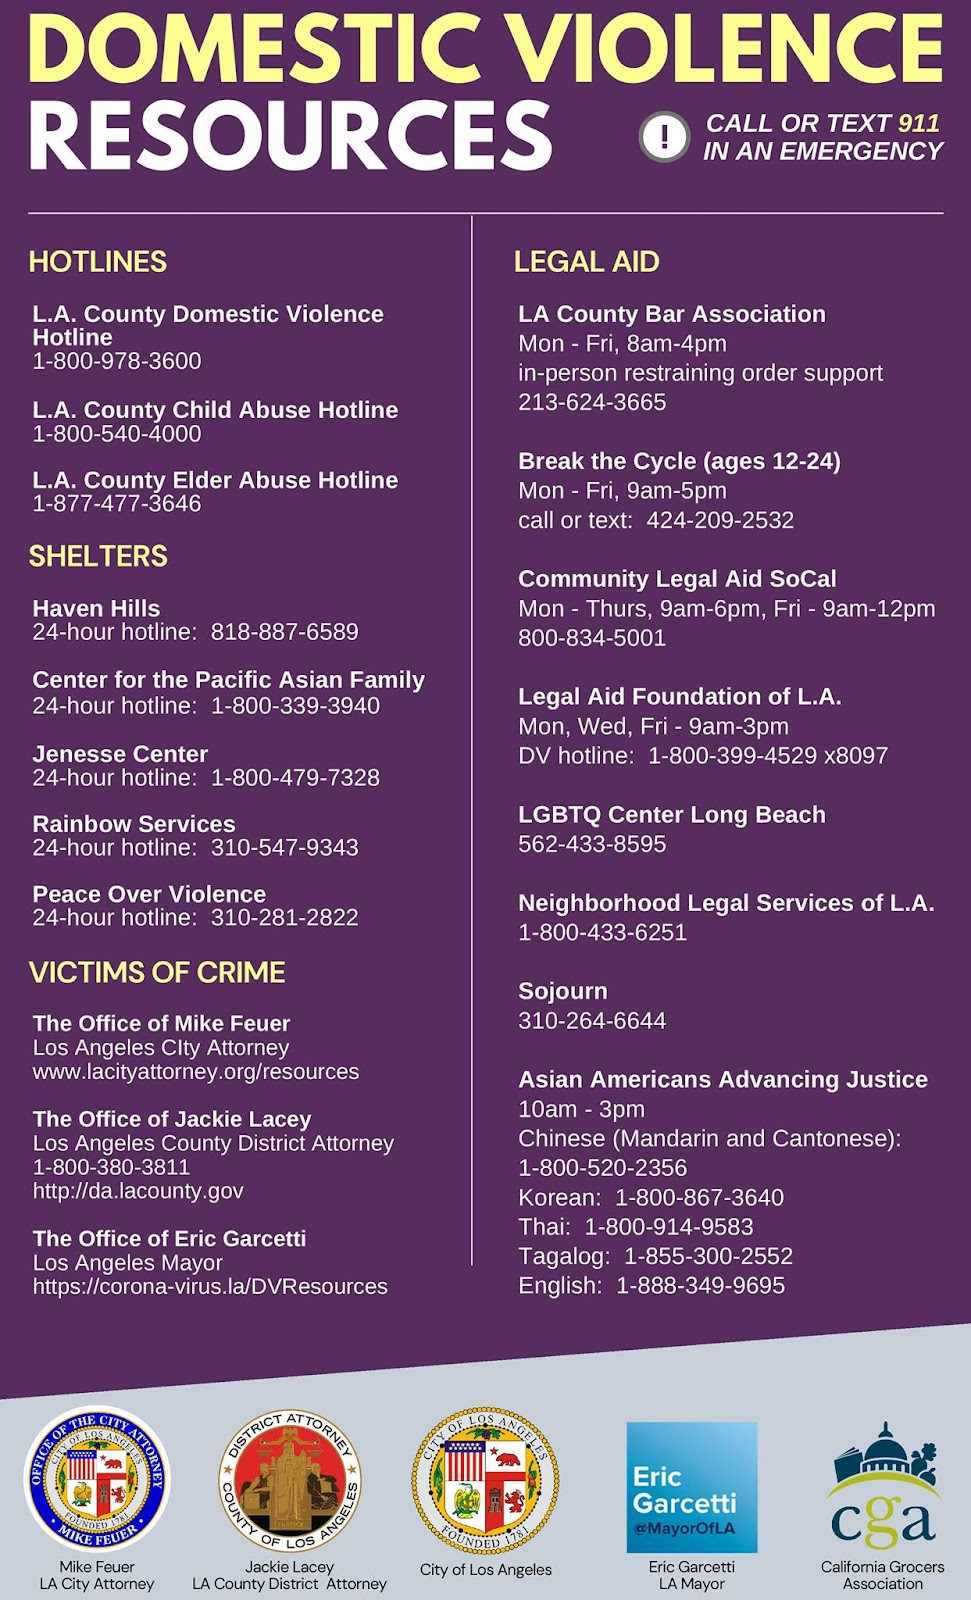 Domestic Violence Help Resources